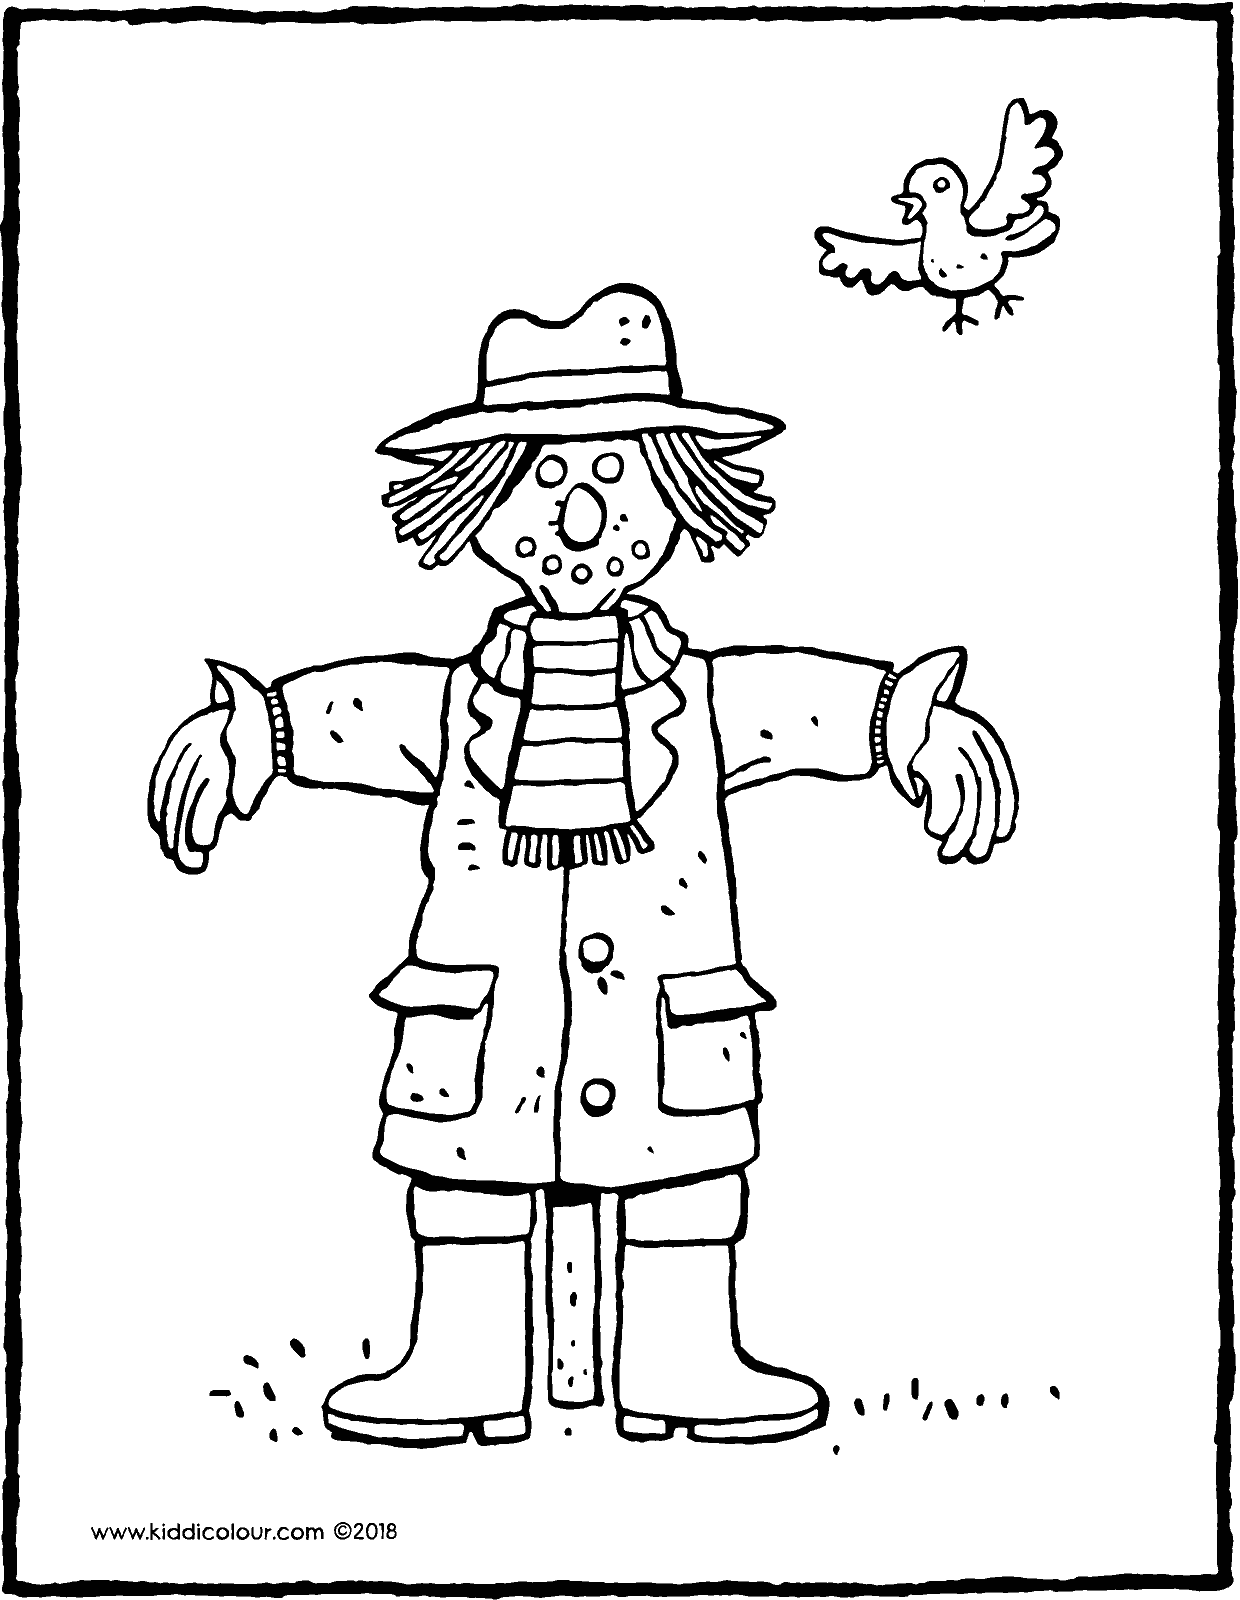 Scarecrow coloring page   Free Printable Coloring Pages   1600x1240